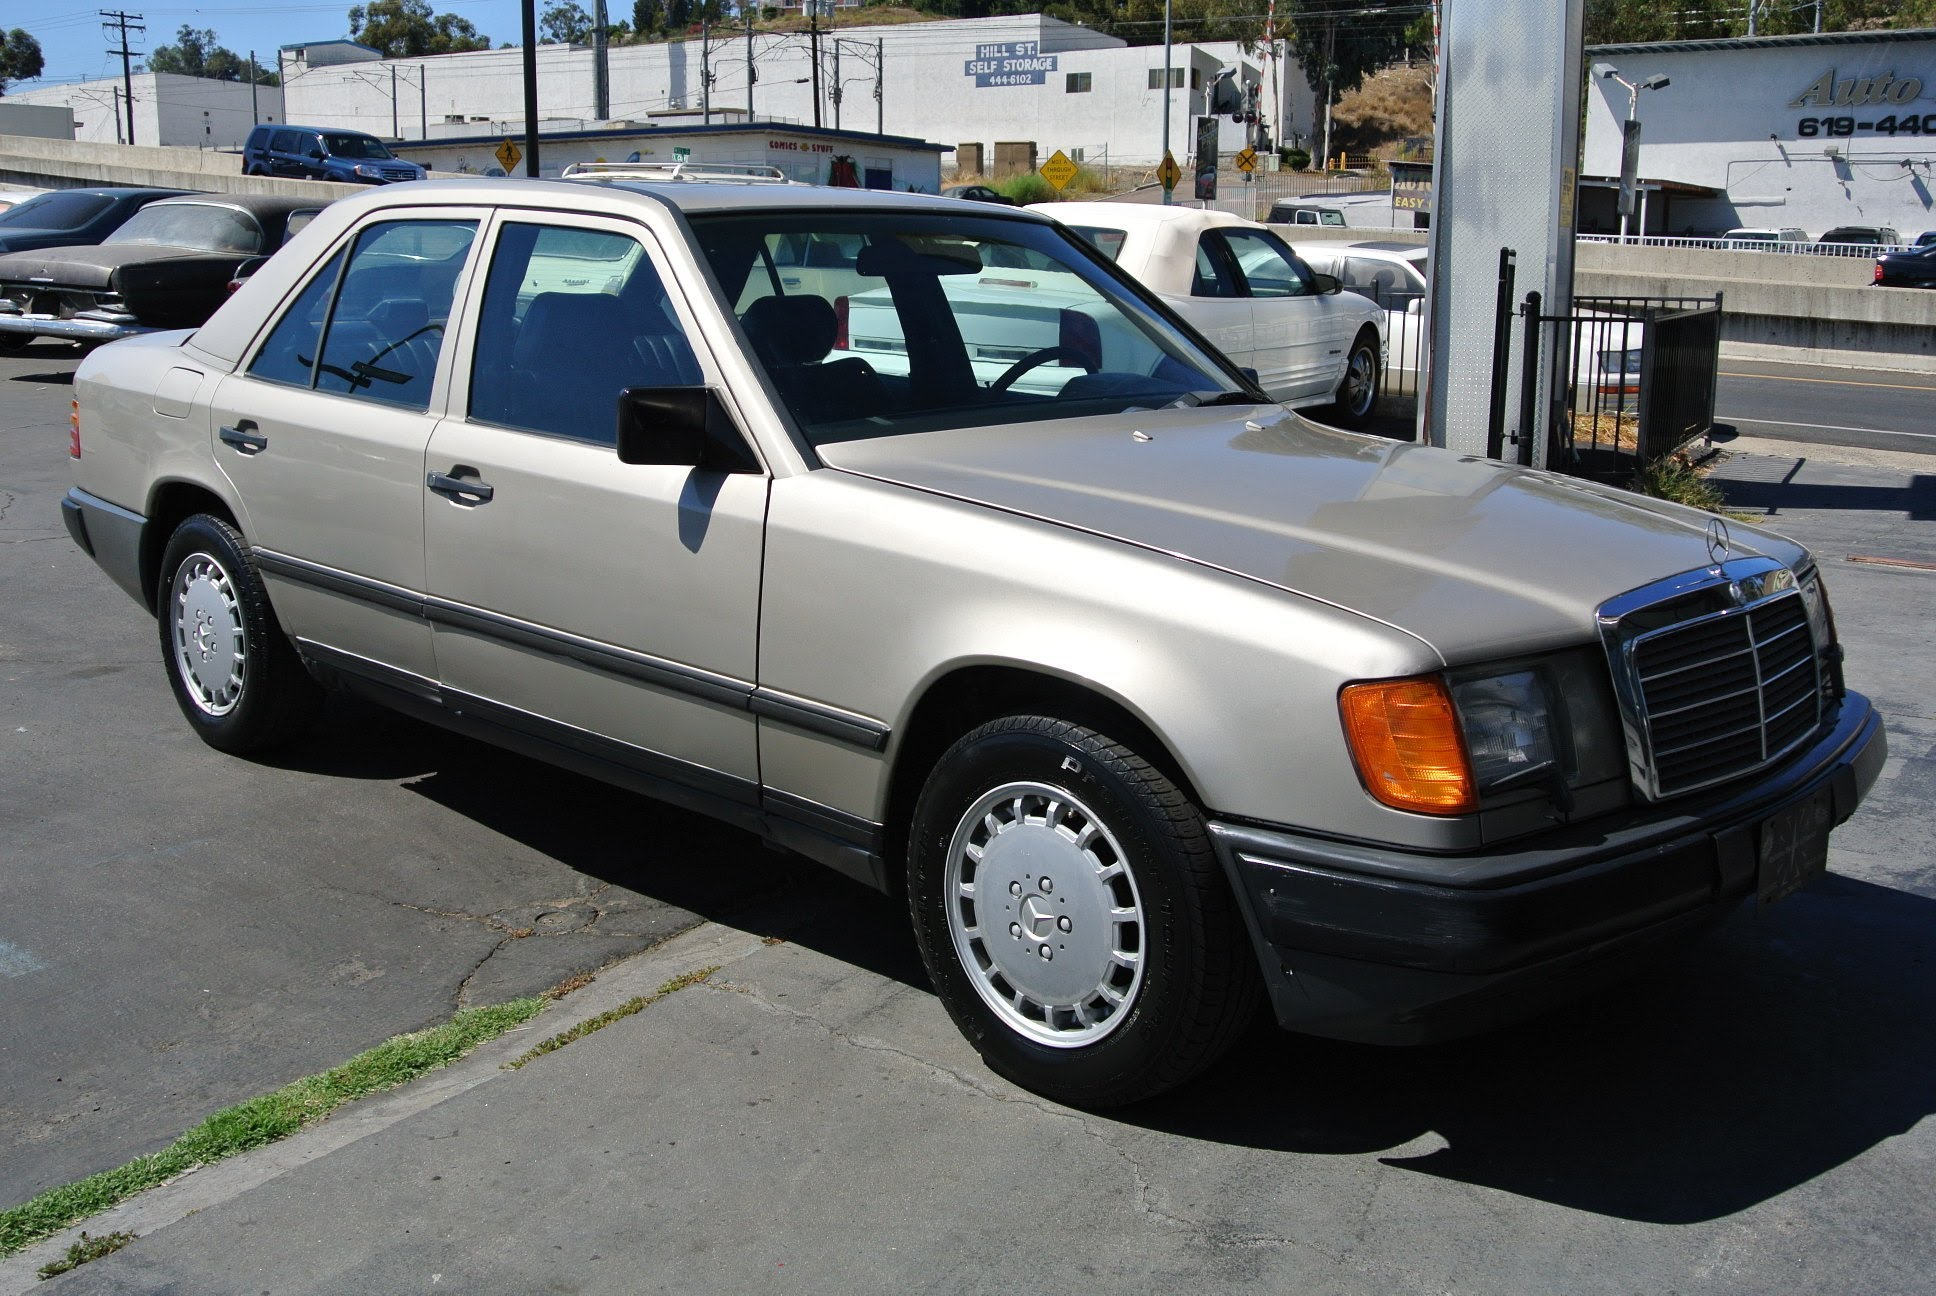 Estate Cars for Sale Near Me Luxury 1987 Mercedes Benz 300d W124 Turbo Sel Turbo Sel 6 Cyl Low Mile